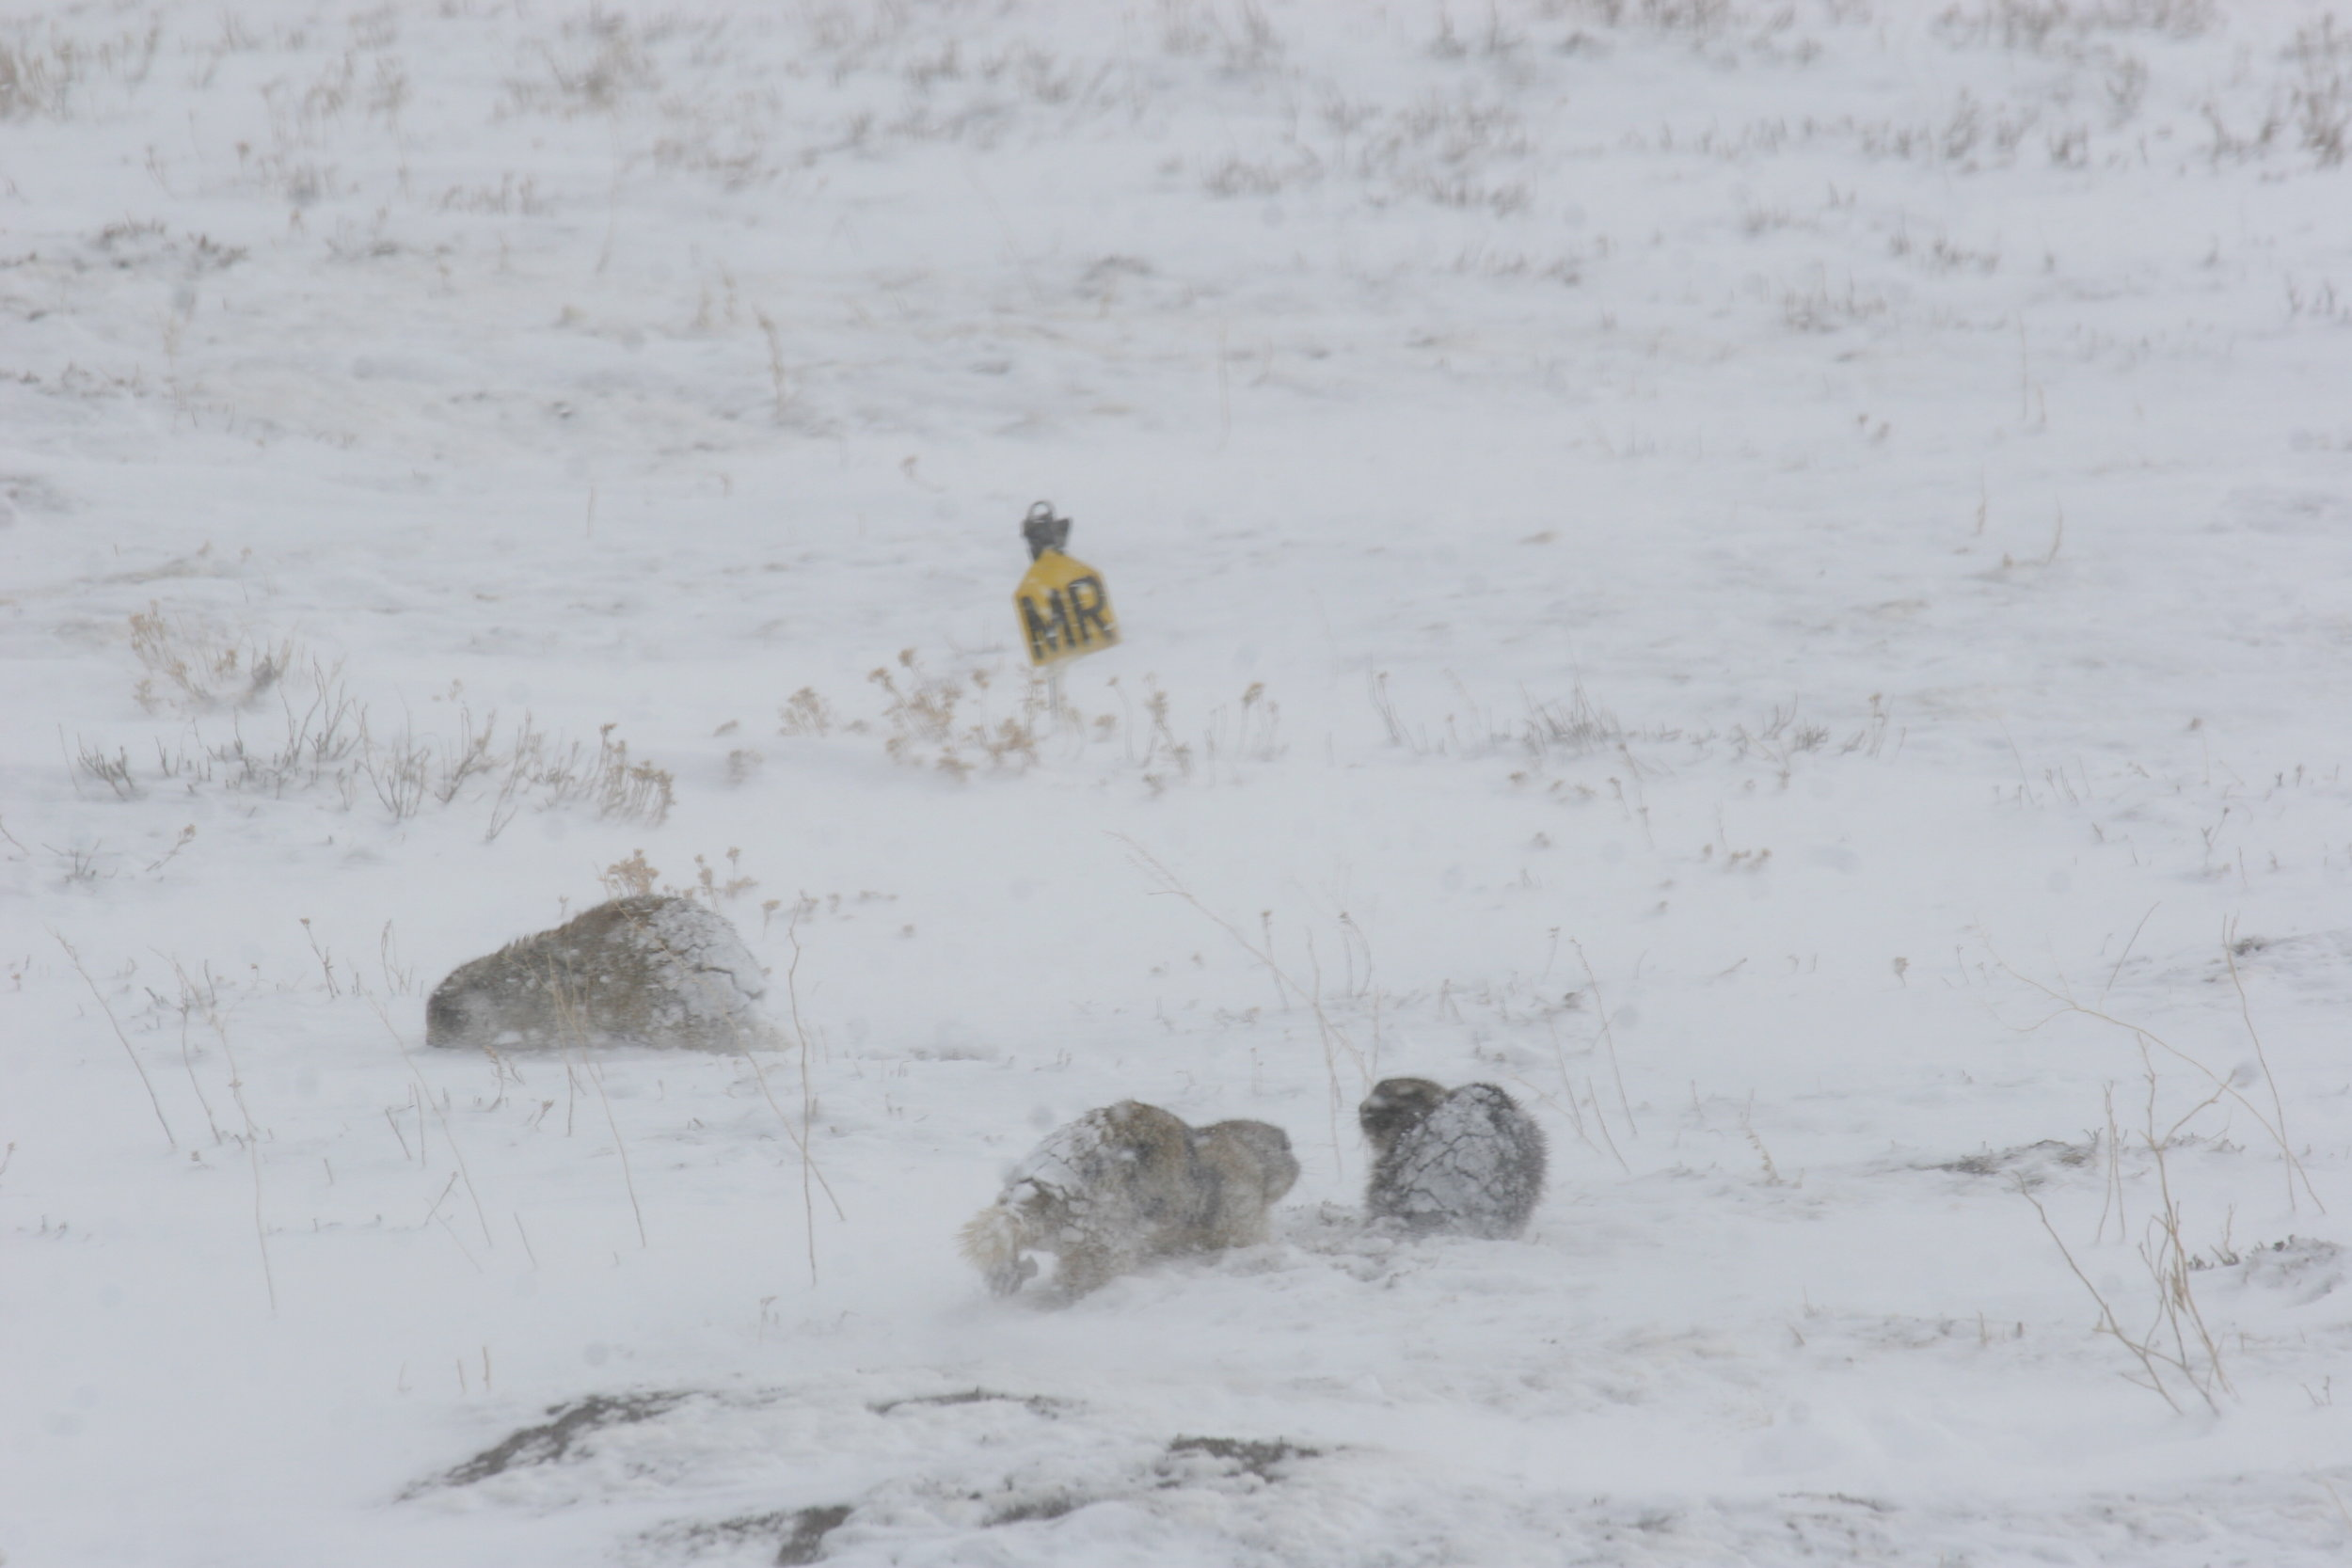 Snow is common across the prairie dog range. They may do their best to avoid the cold and wet, but once the mating season has begun, not only a spring snowfall can keep the prairie dogs underground.  ©John Hoogland 2010